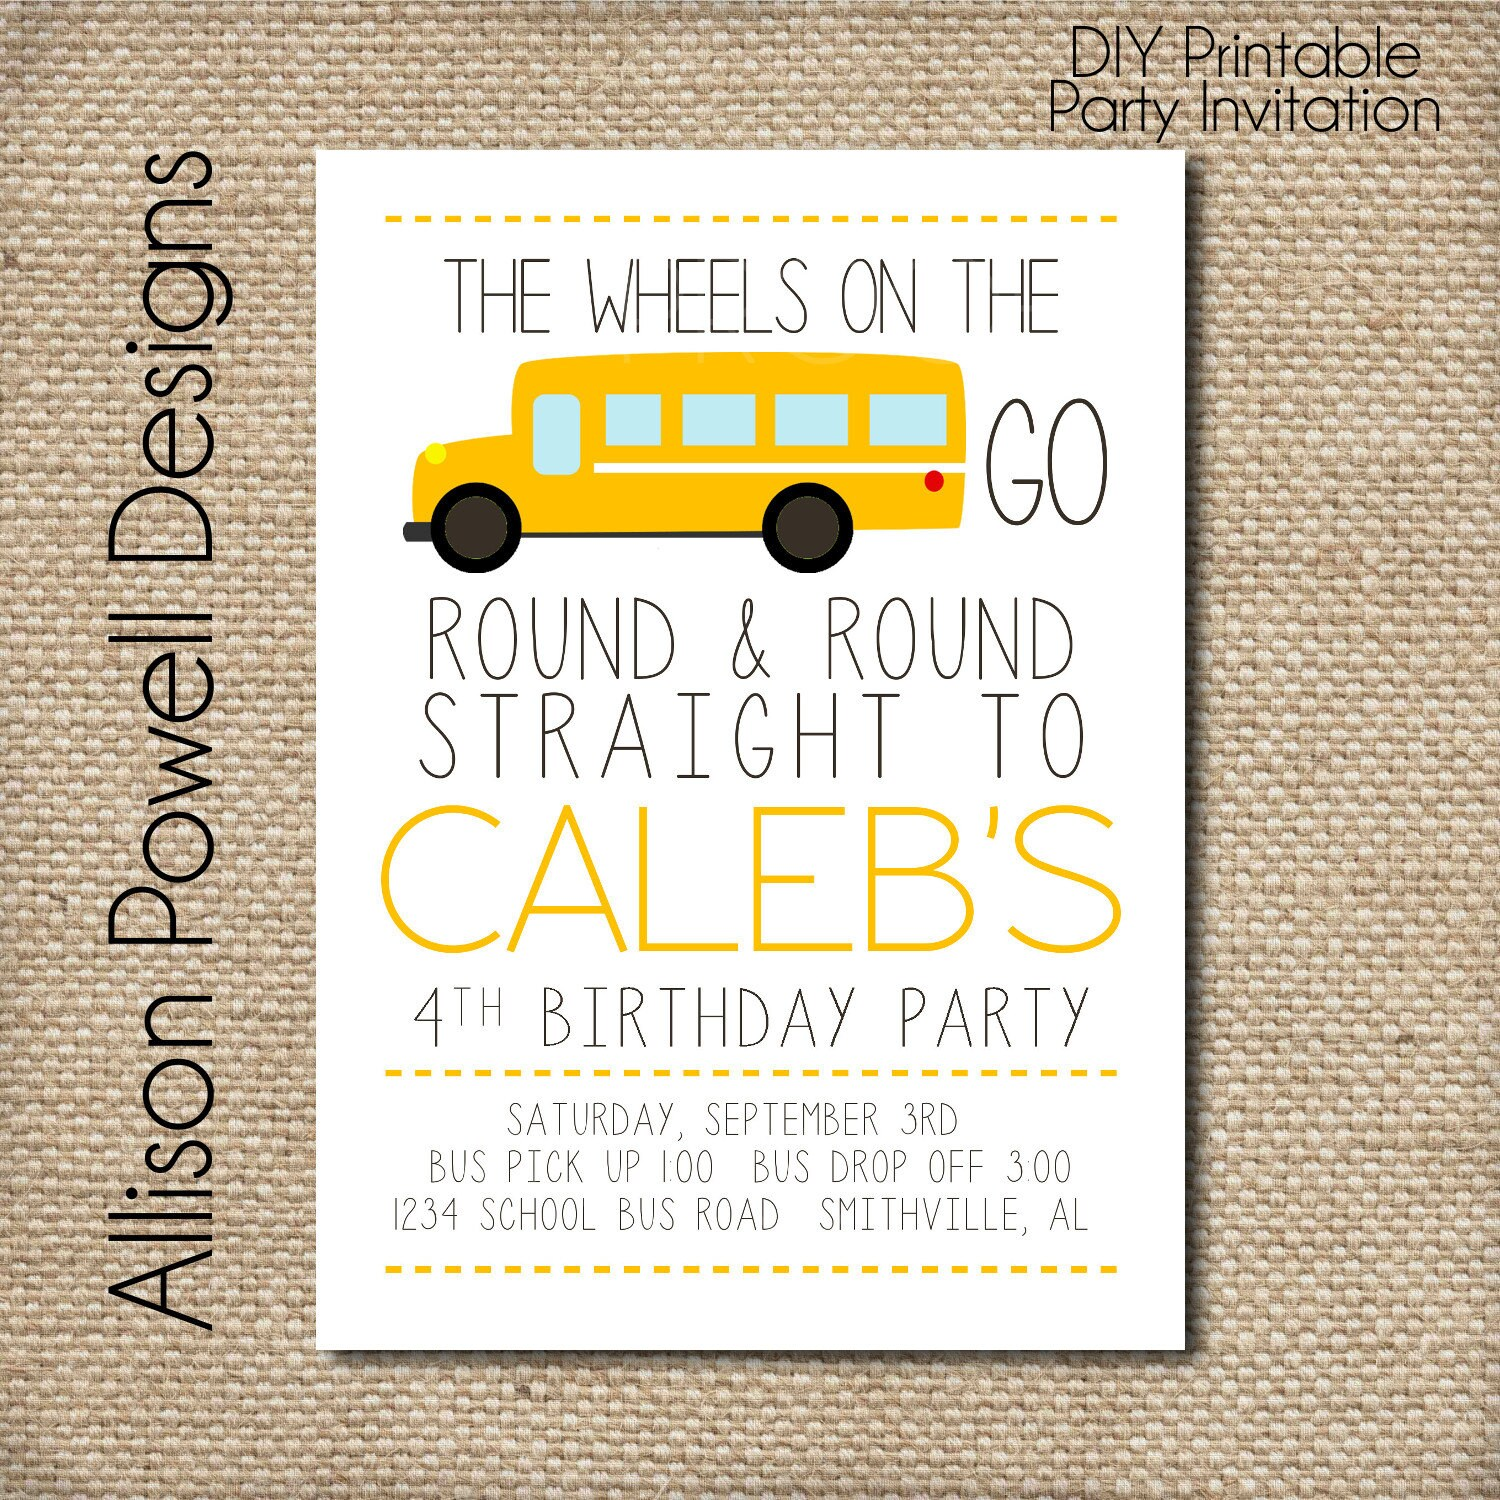 School Bus Wheels On The Bus Birthday Party Invitation | Etsy